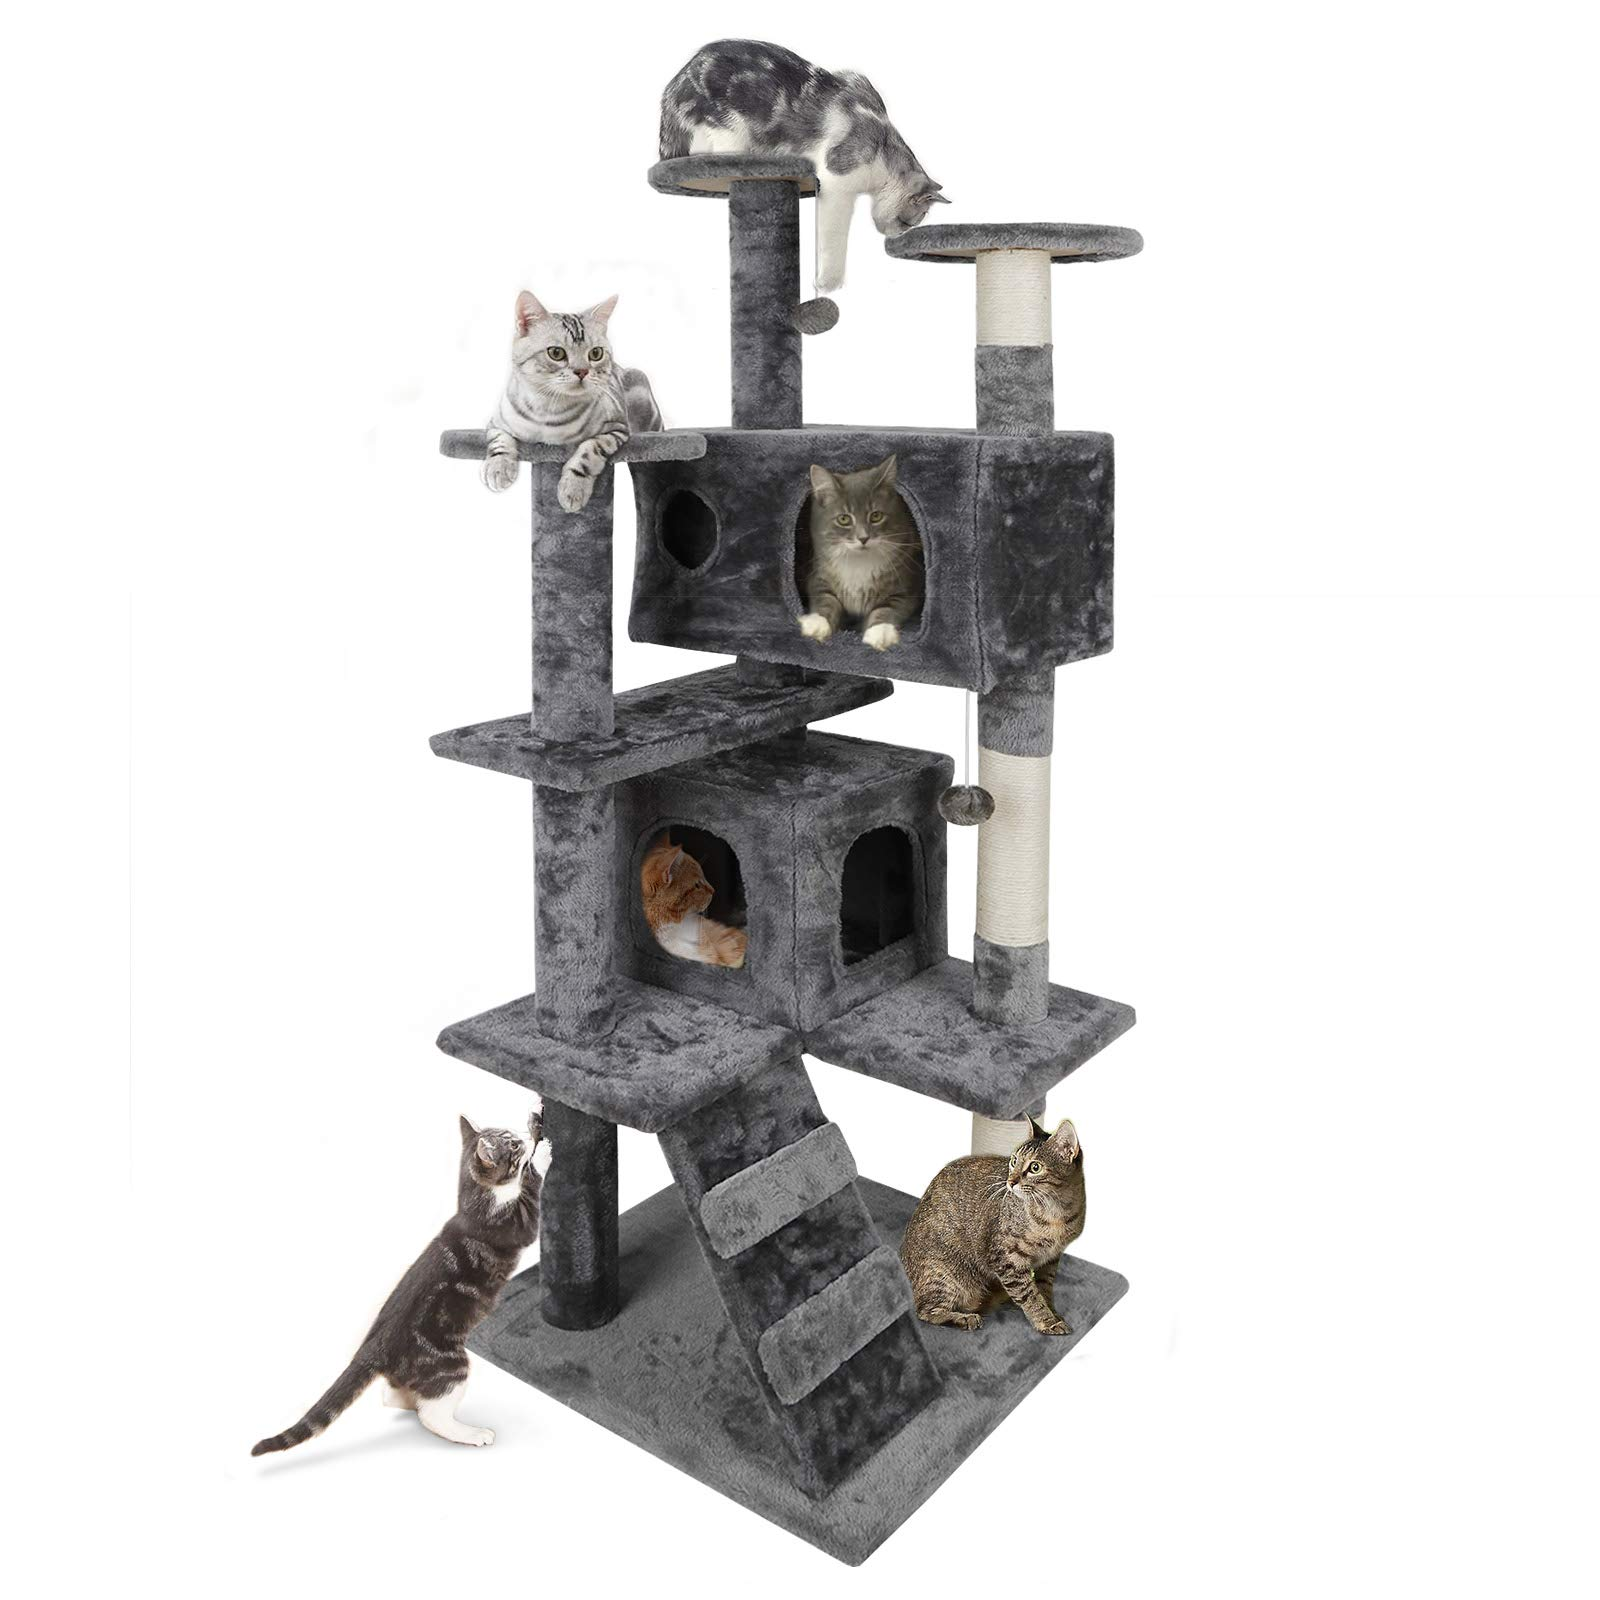 Nova Microdermabrasion 53'' Multi-Level Cat Tree Stand House Furniture Kittens Activity Tower with Scratching Posts Kitty Pet Play House (Grey) by Nova Microdermabrasion